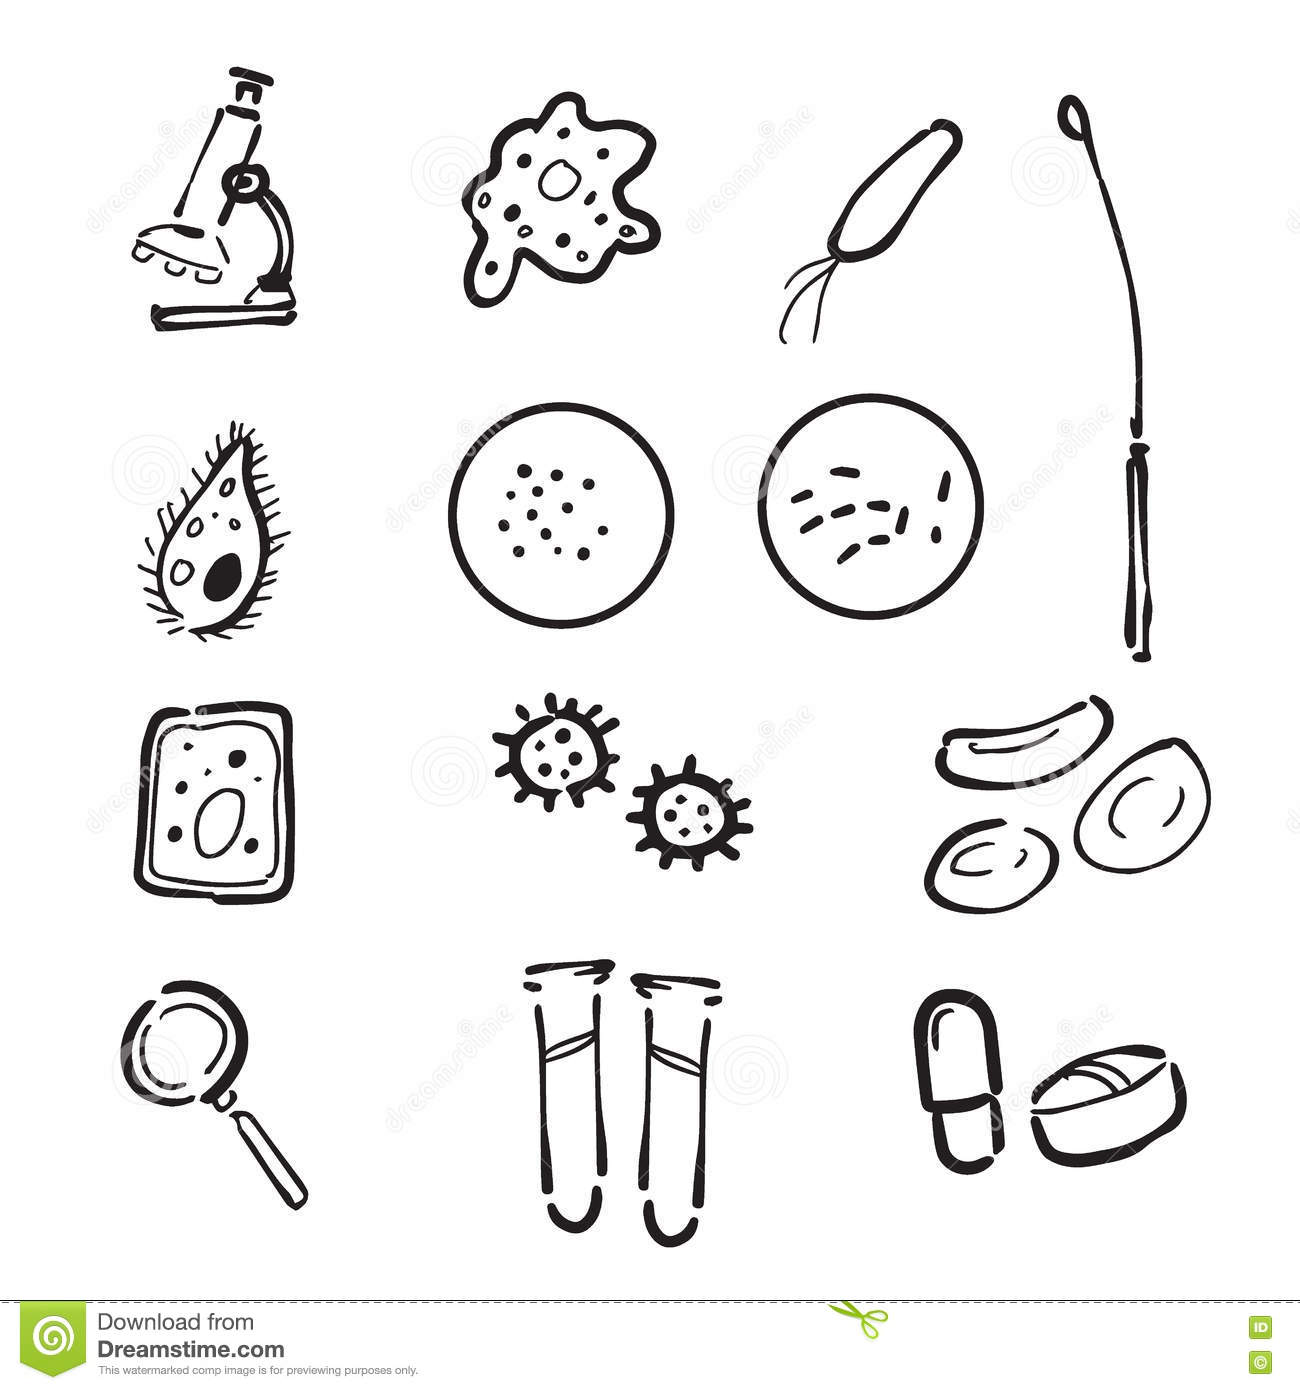 The microbiology coloring book free download - Microbiology Lab Doodle Icons Set Stock Photo